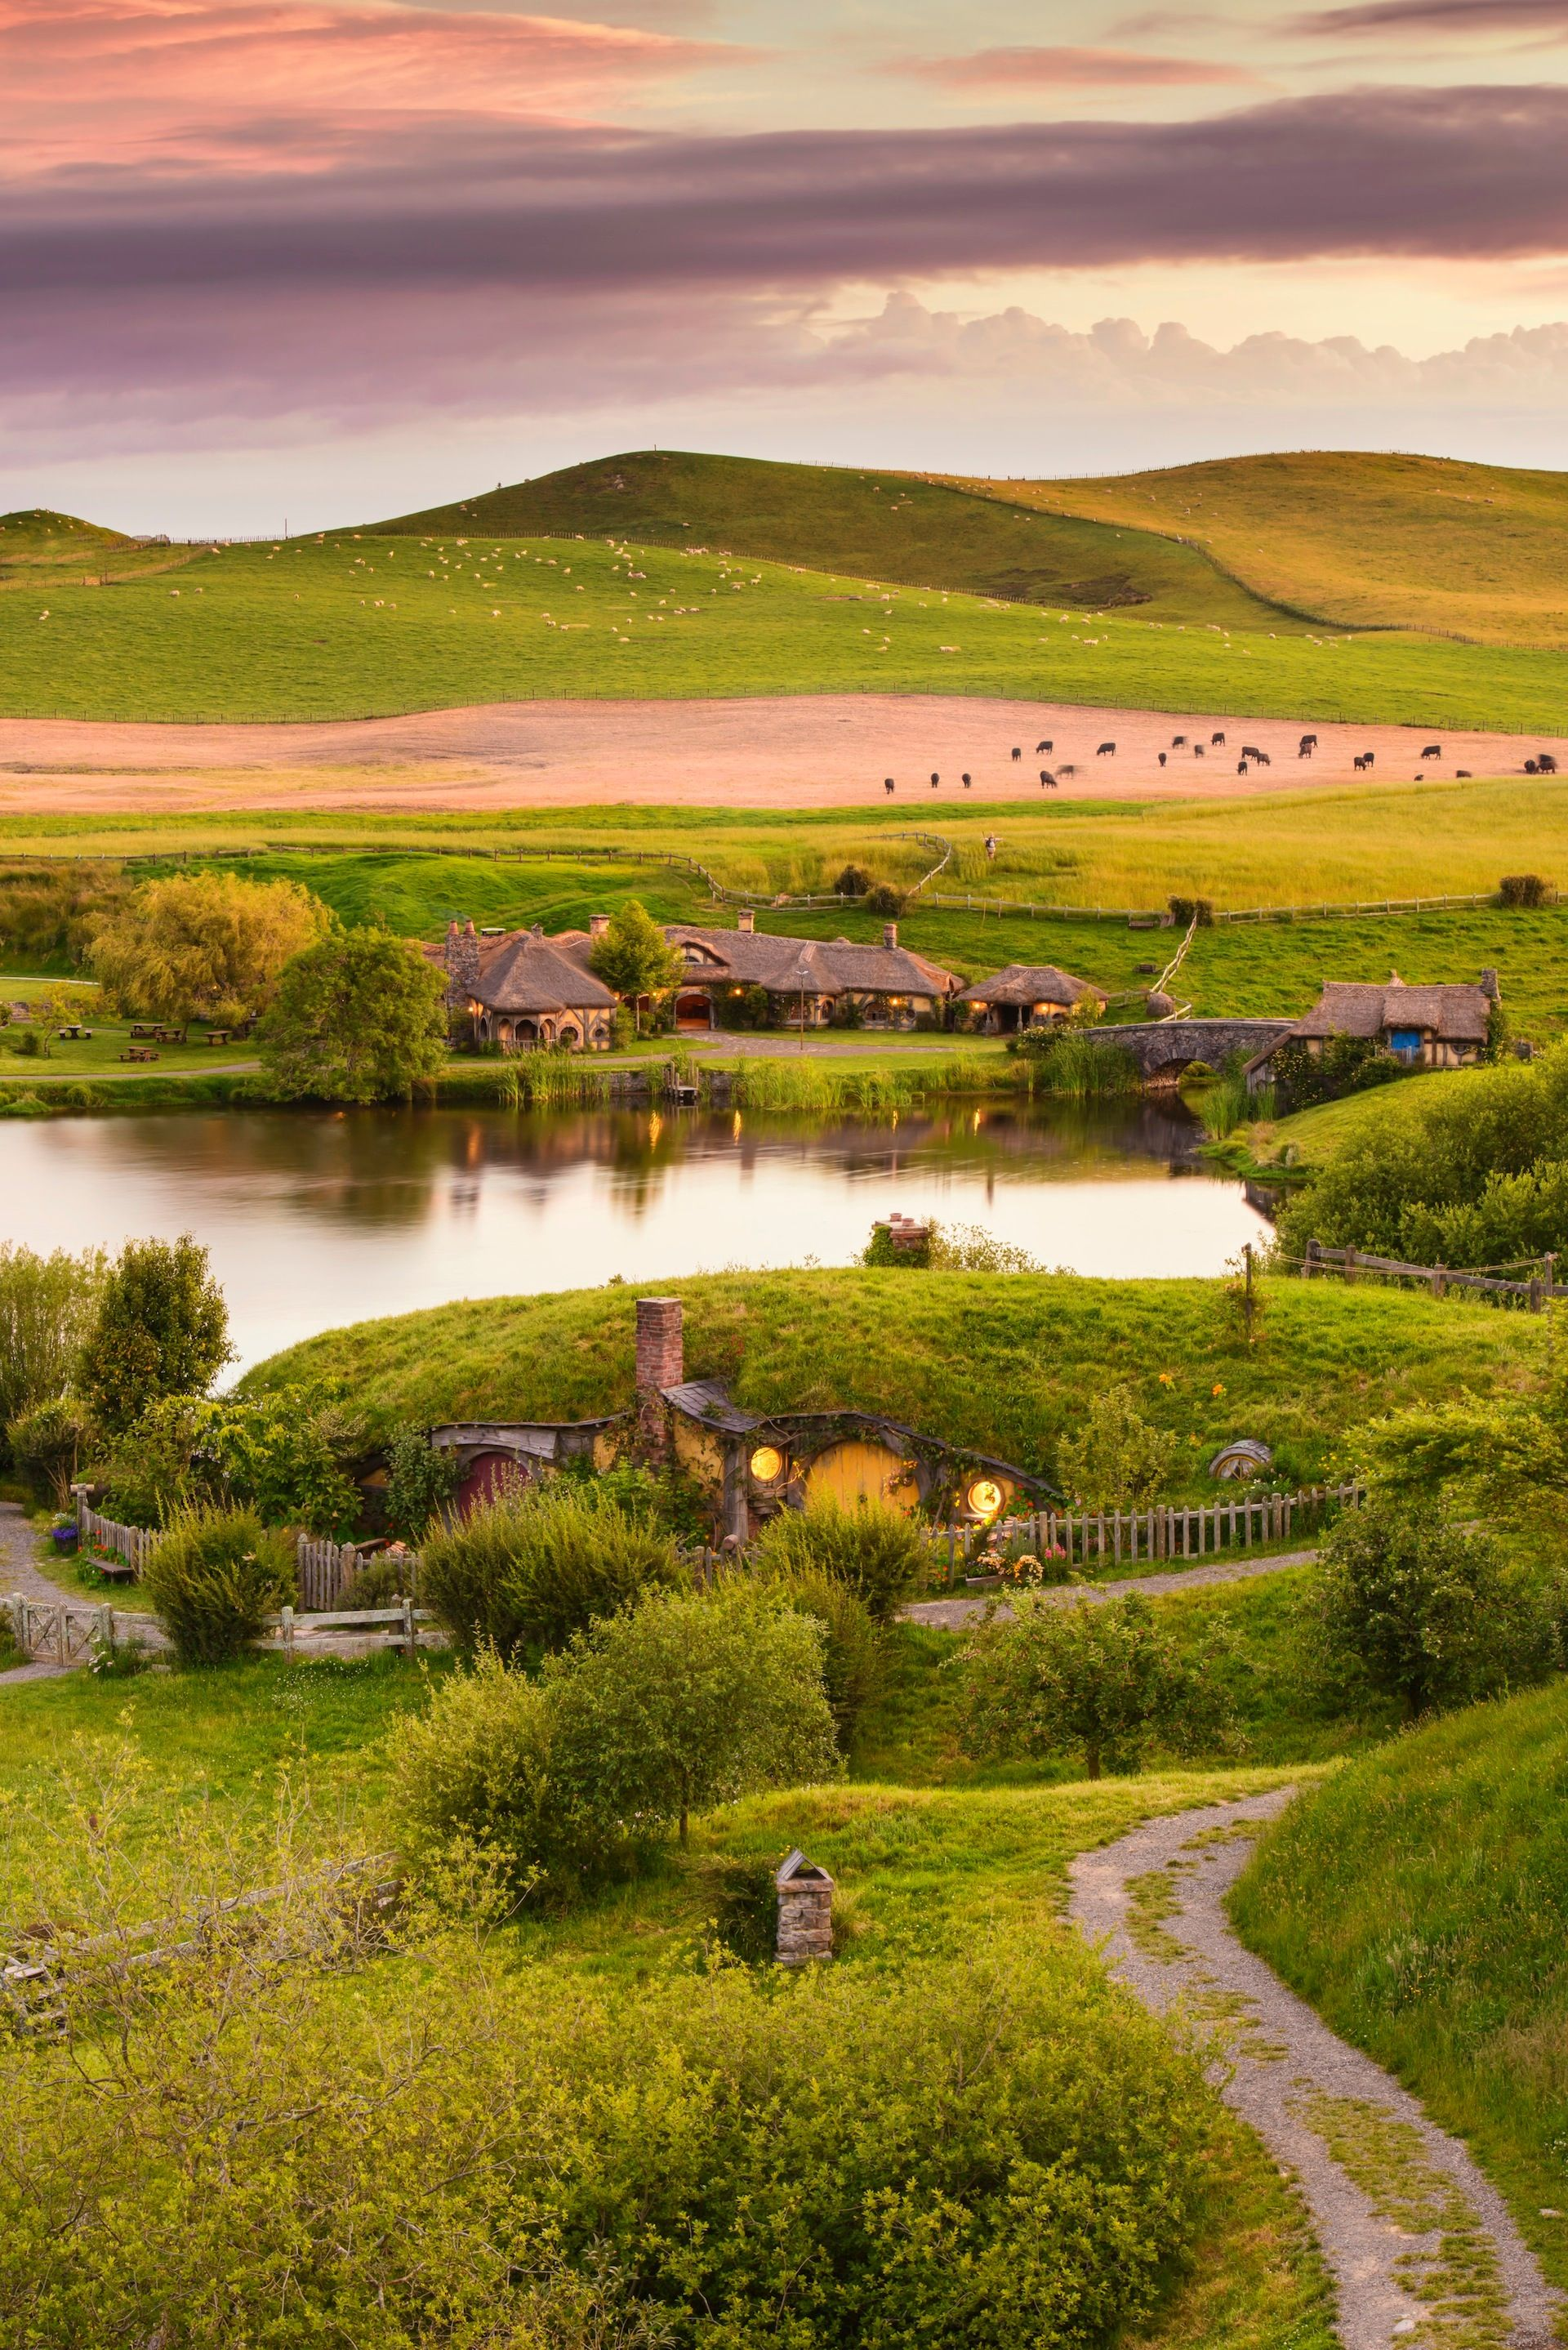 Matamata New Zealand This Is Where The Shire Hobbiton Was Filmed For Lotr And The Hobbit Beautiful Places Middle Earth The Hobbit